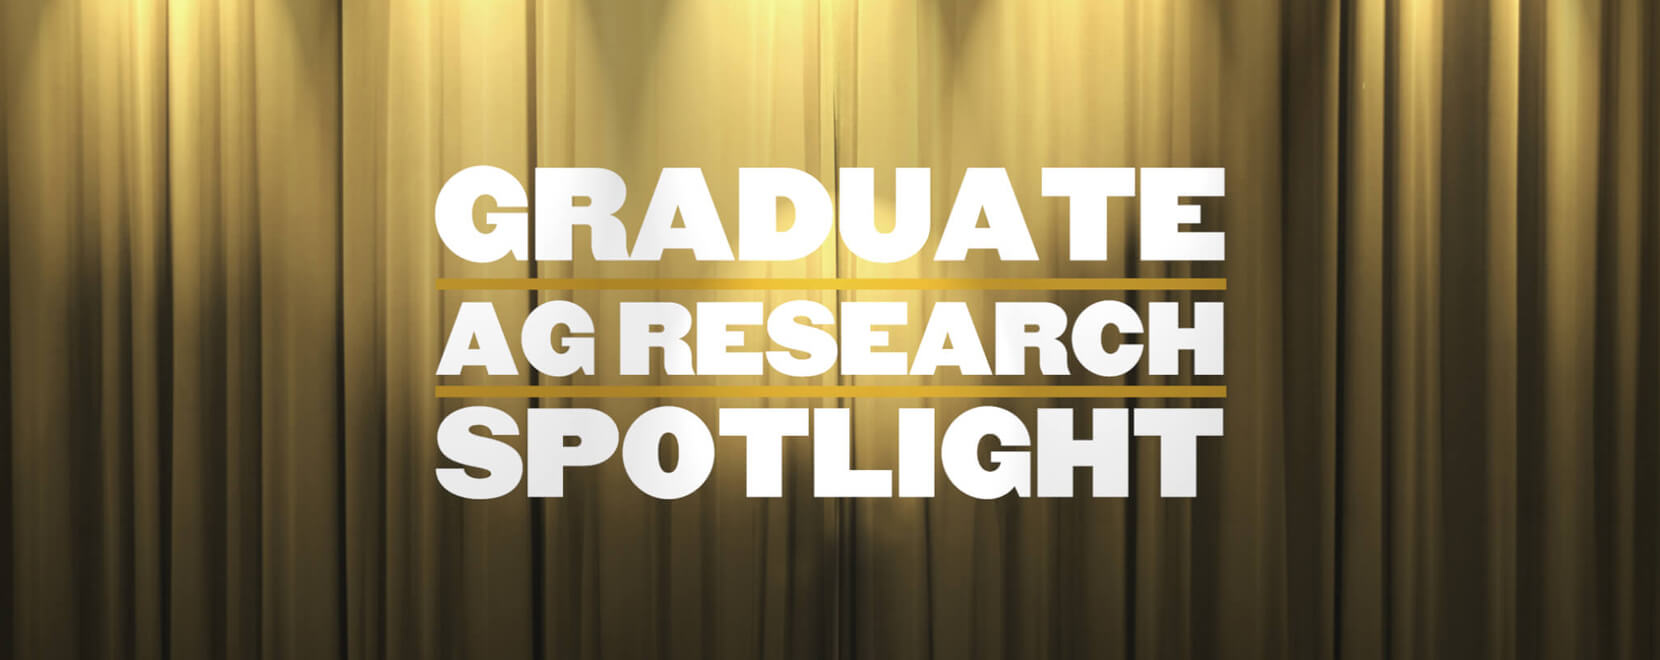 Graduate Ag Research Spotlight: Omar Zayed